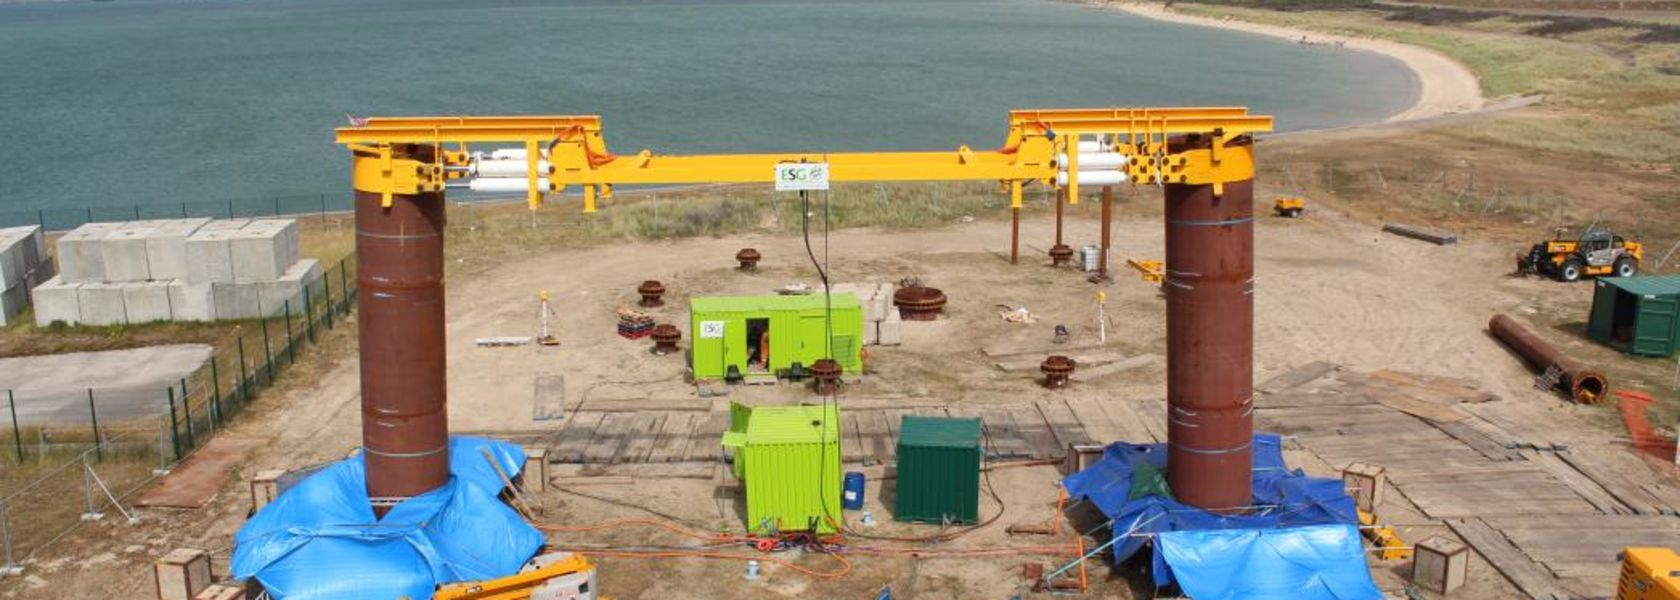 New design methods for offshore wind farm monopiles